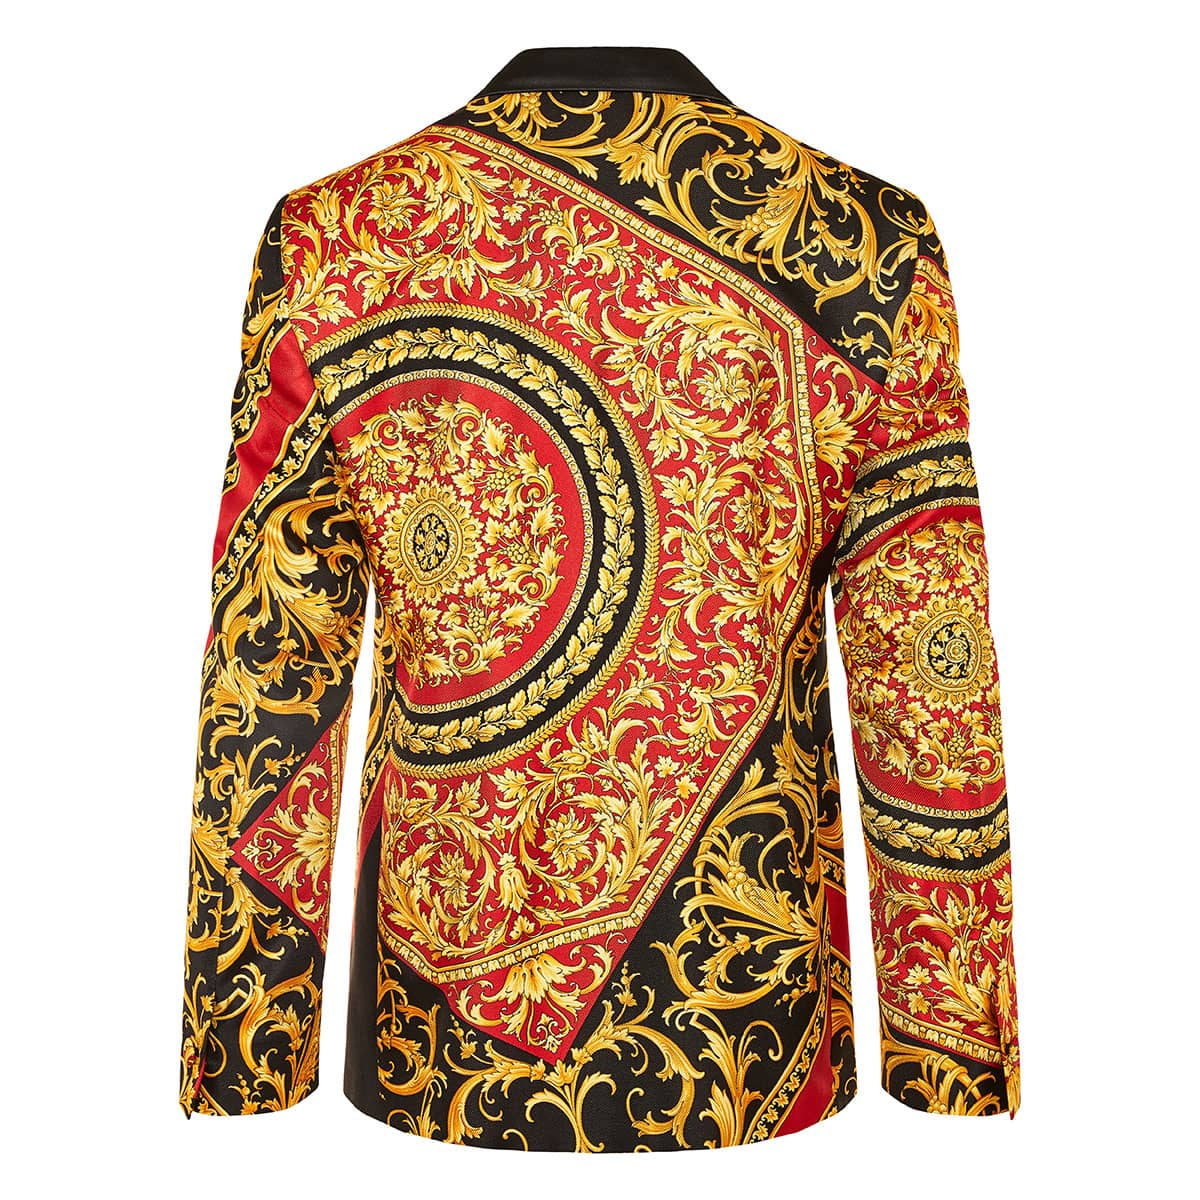 Baroque printed silk blazer